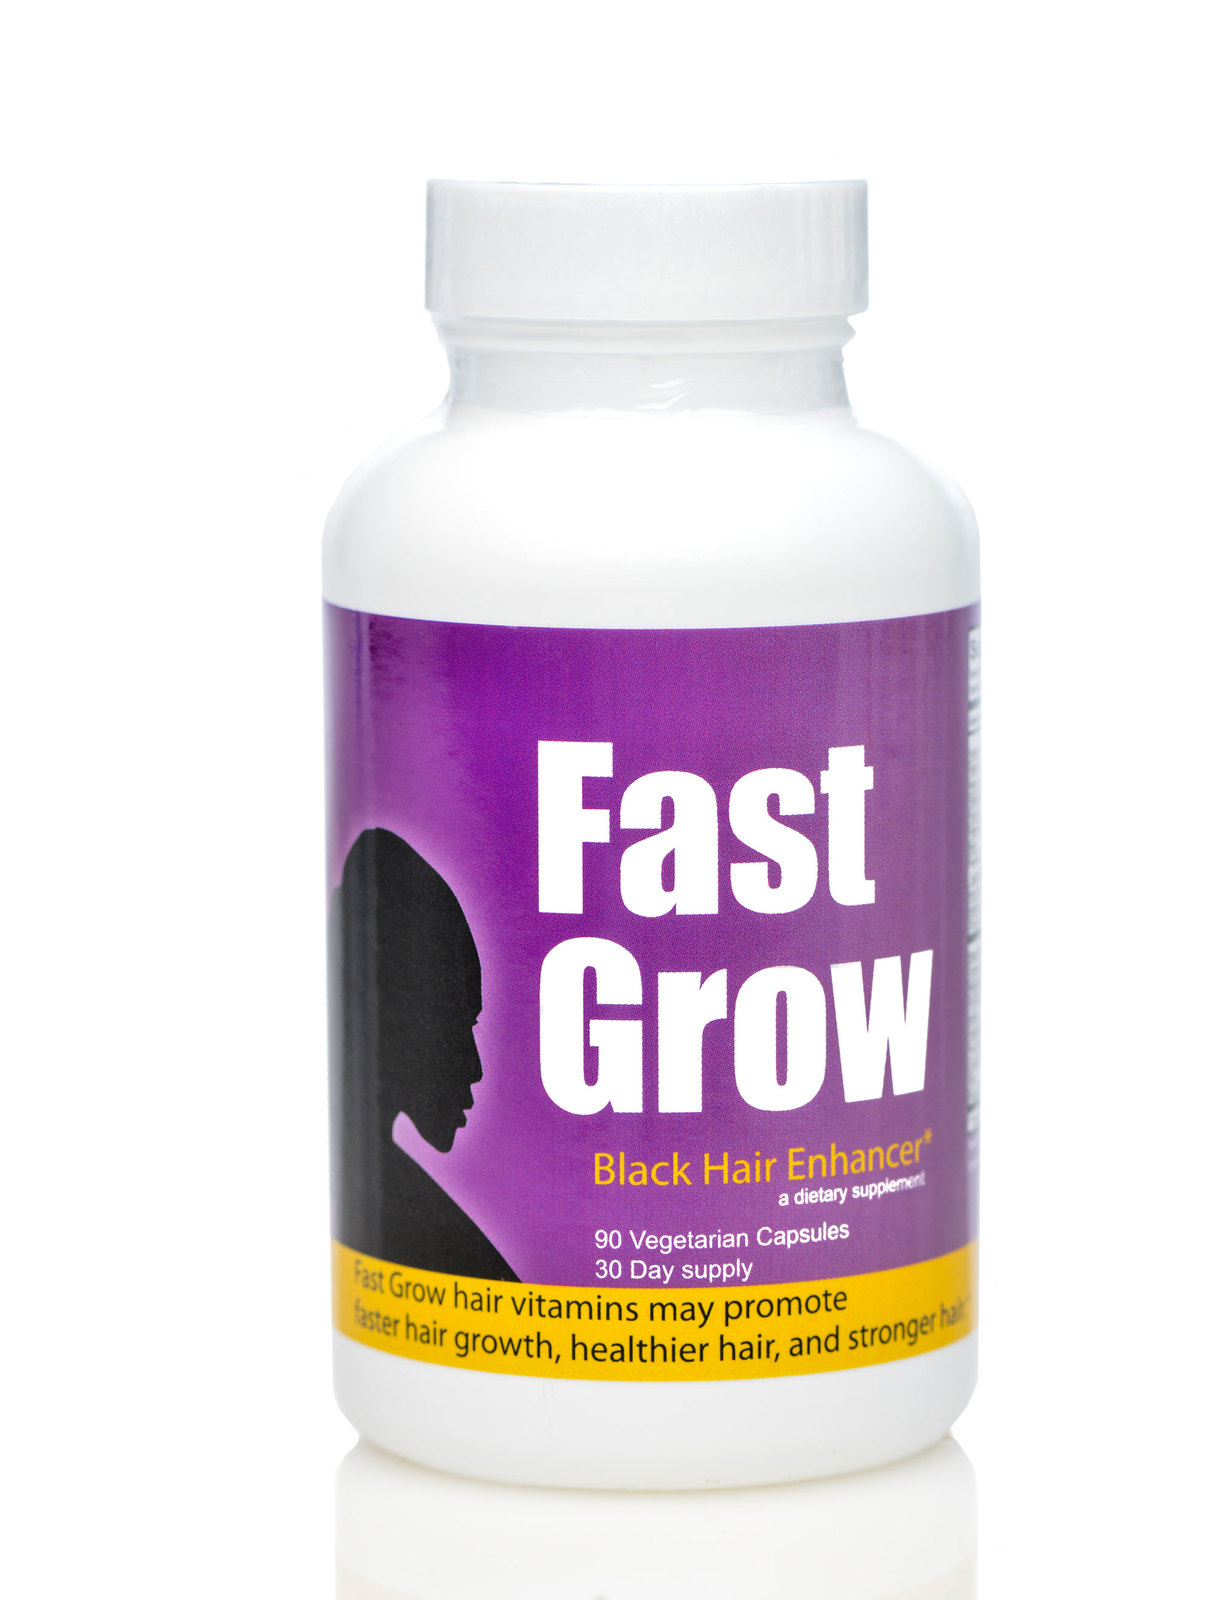 Growth Vitamins with Biotin 1 month supply for Black Women  Hair Loss